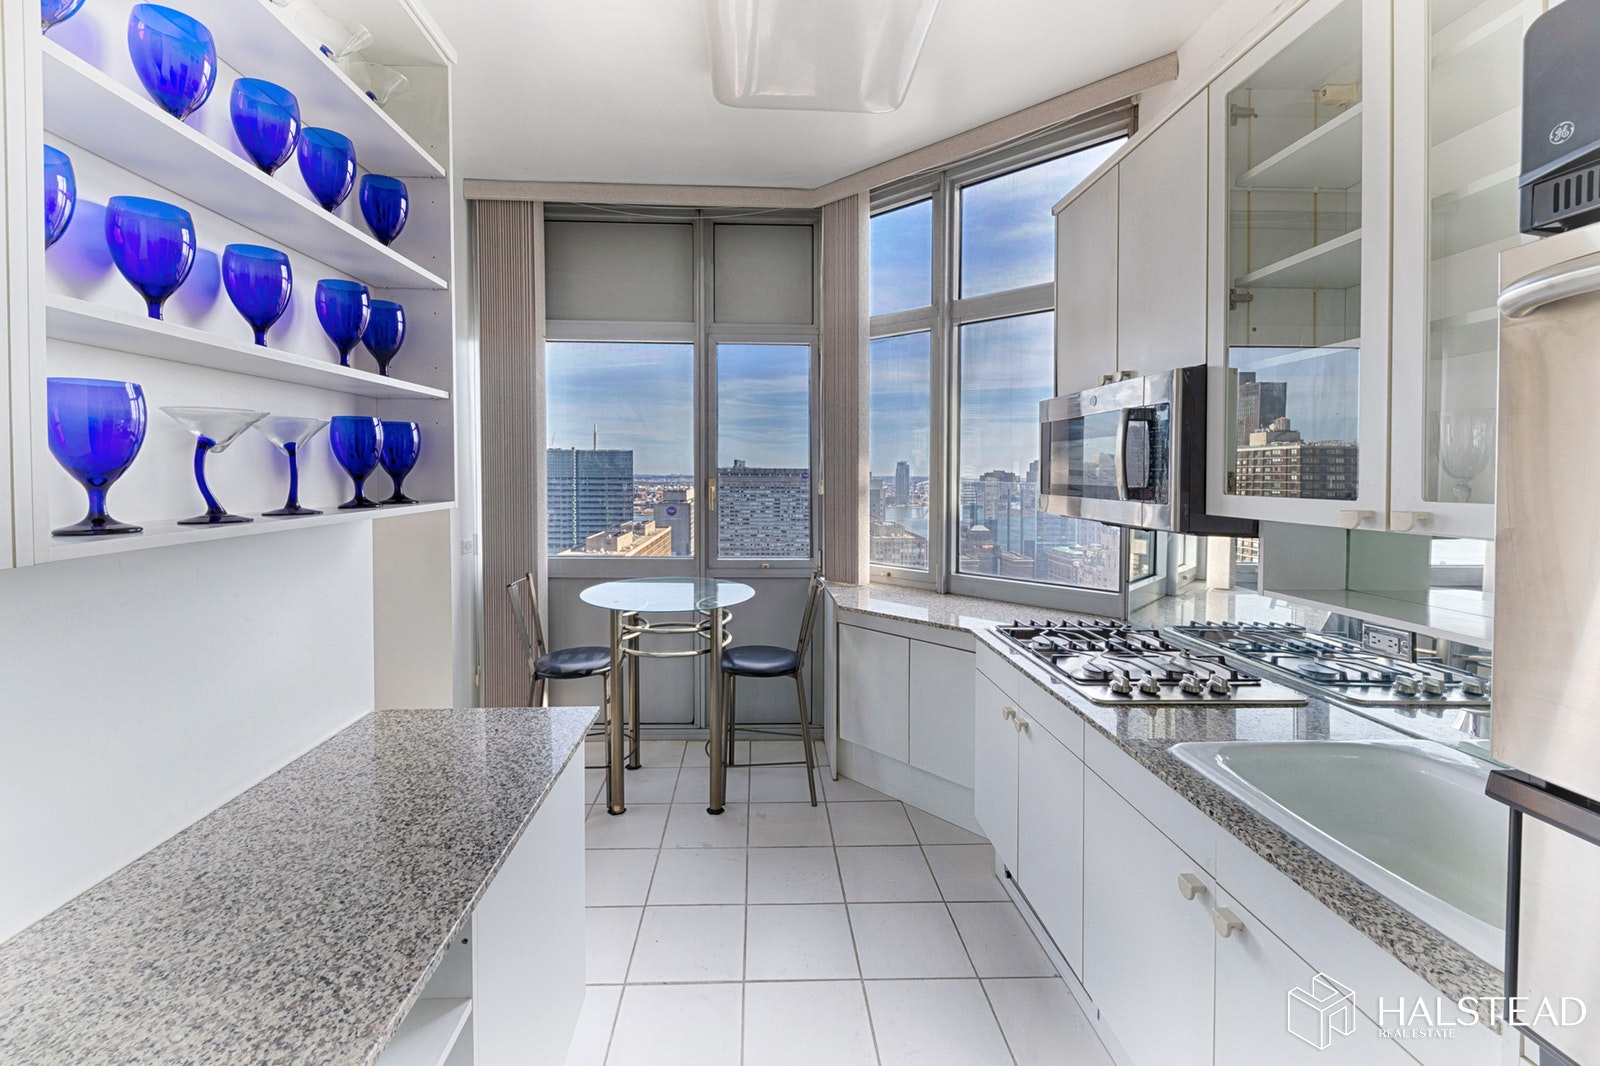 Apartment for sale at 200 East 32nd Street, Apt 28E